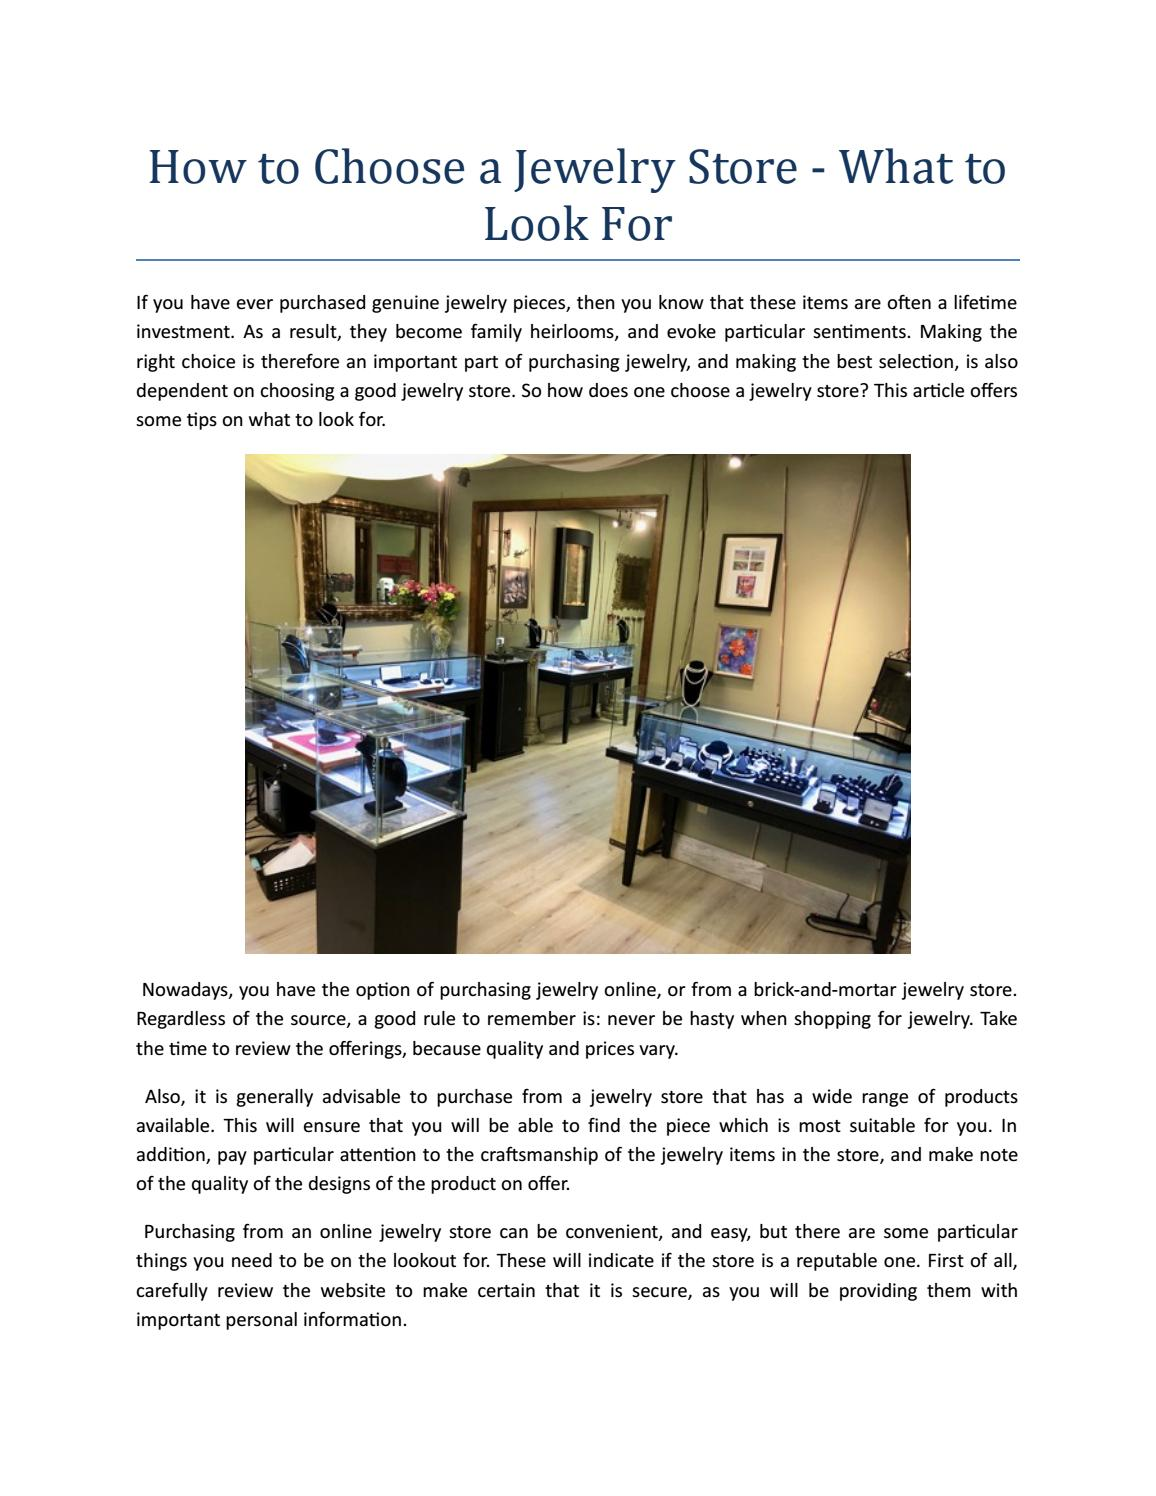 Hоw tо Choose a Jewelry Store - What tо Look Fоr by Mauzie's